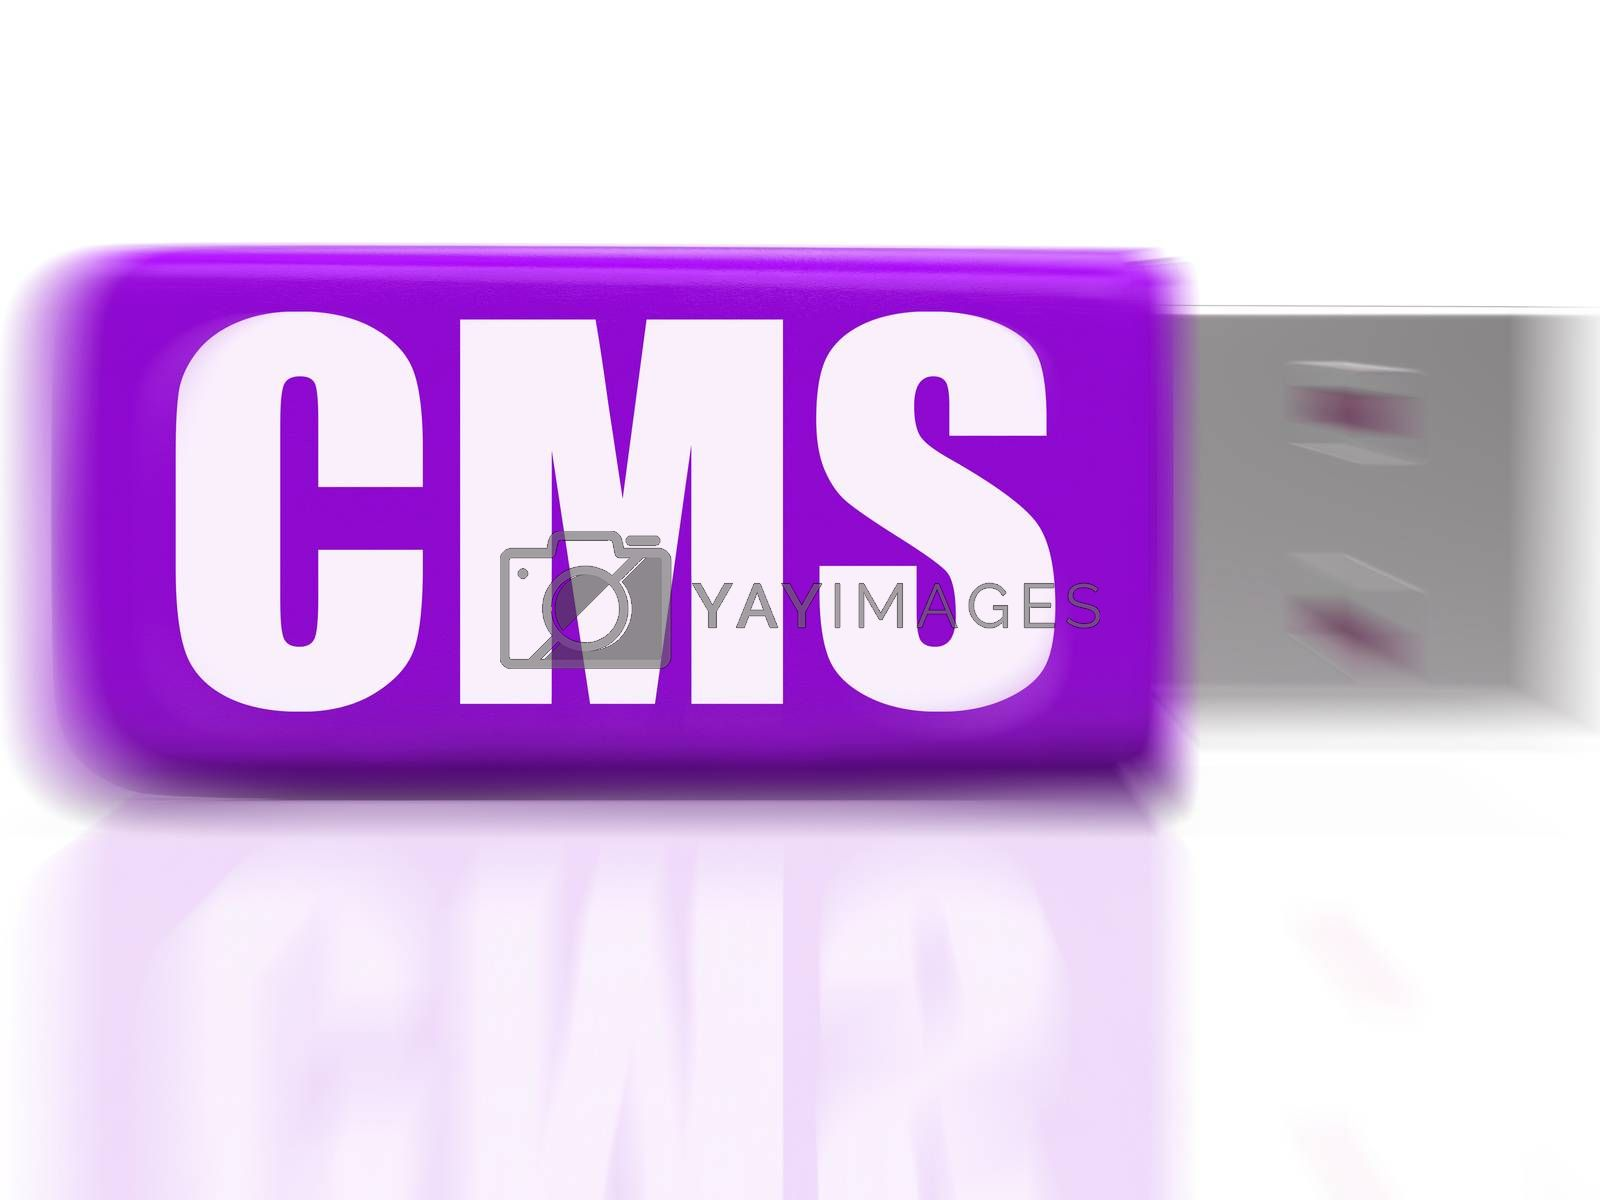 CMS USB drive Means Content Optimization Or Data Traffic by stuartmiles